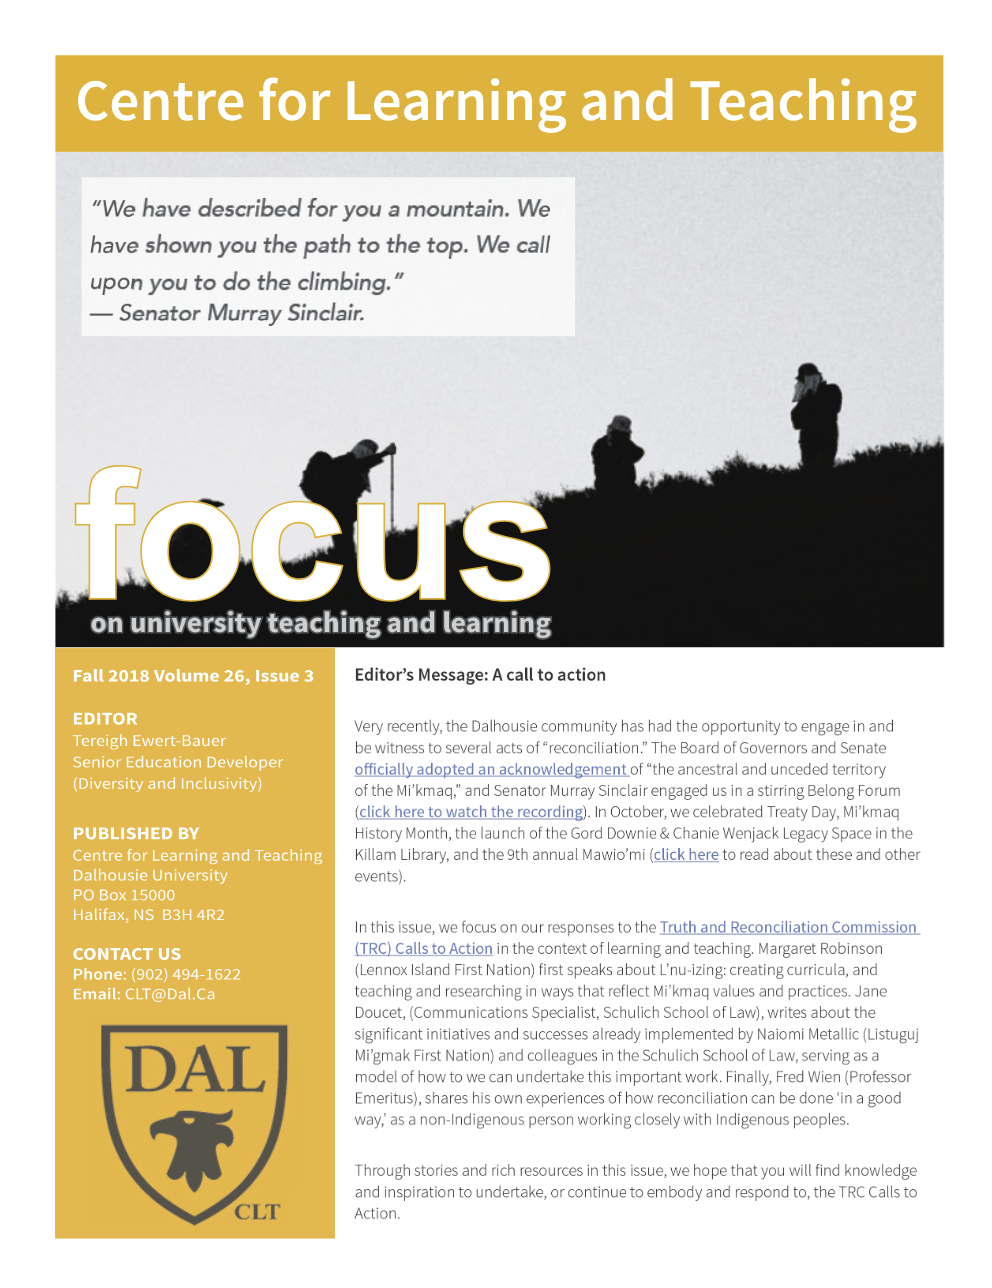 3 Education Issues That Will Have To Be Reconciled After >> Answering The Call Dal News Dalhousie University